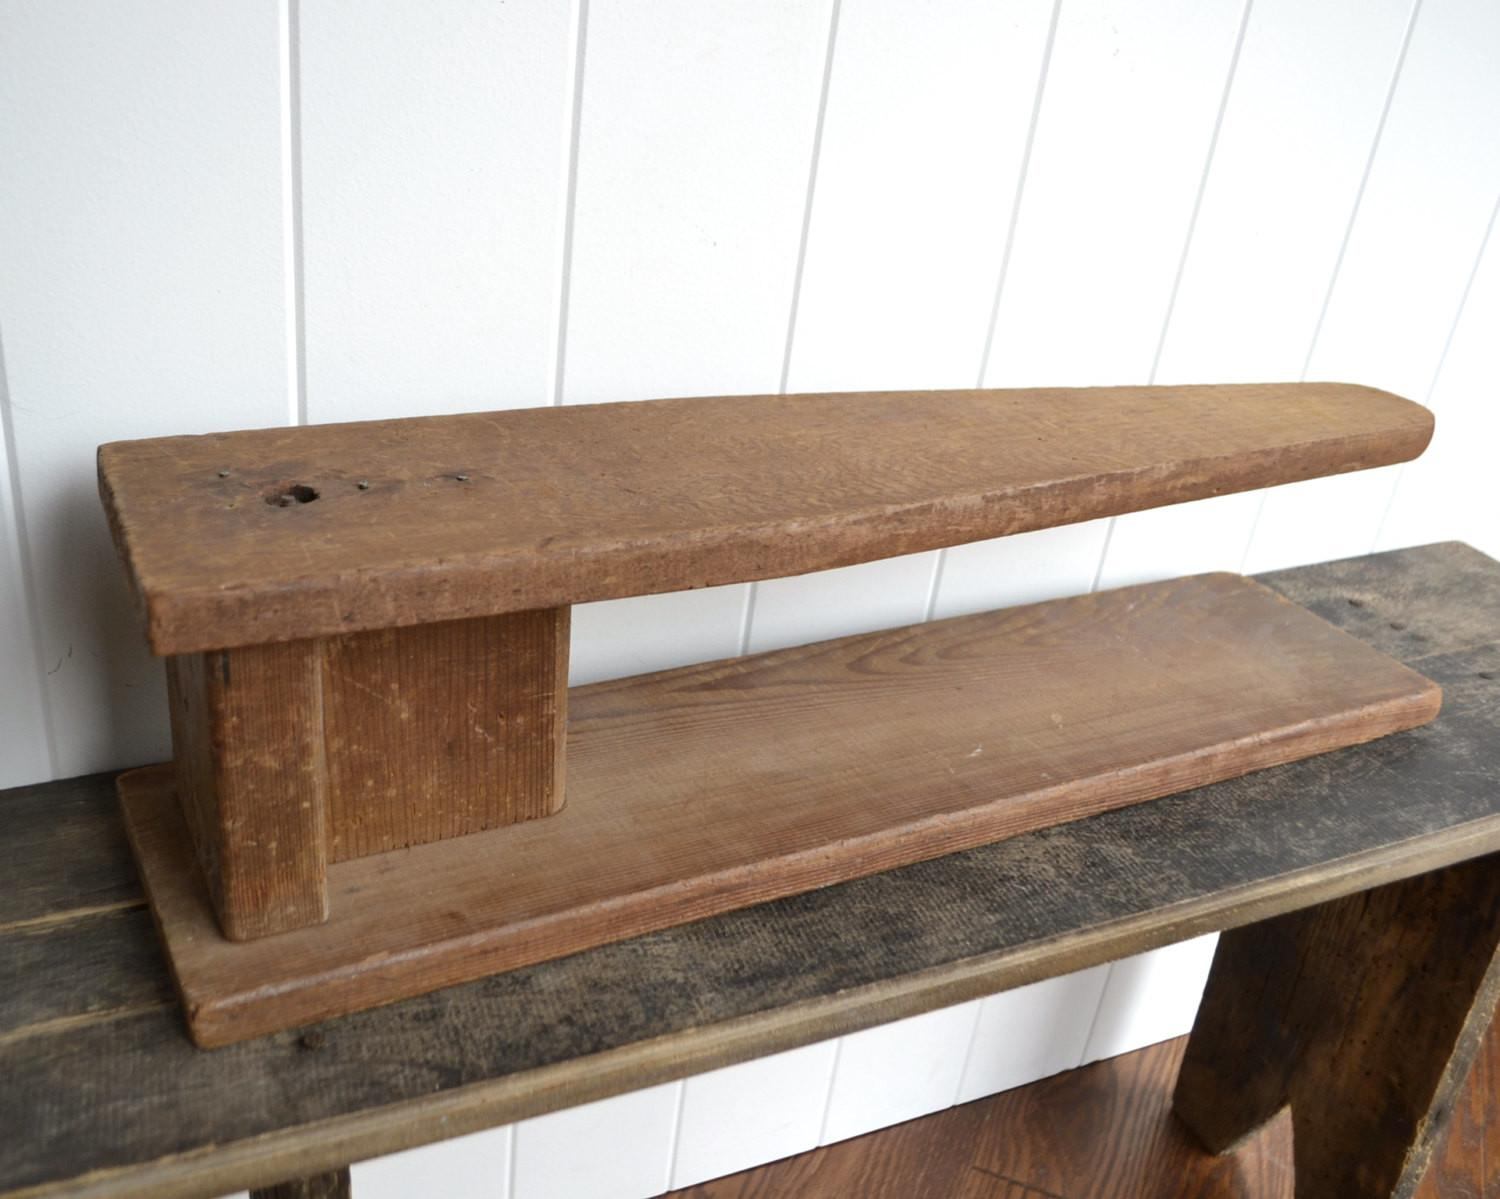 Antique Wooden Ironing Board Wood Tabletop Sleeve